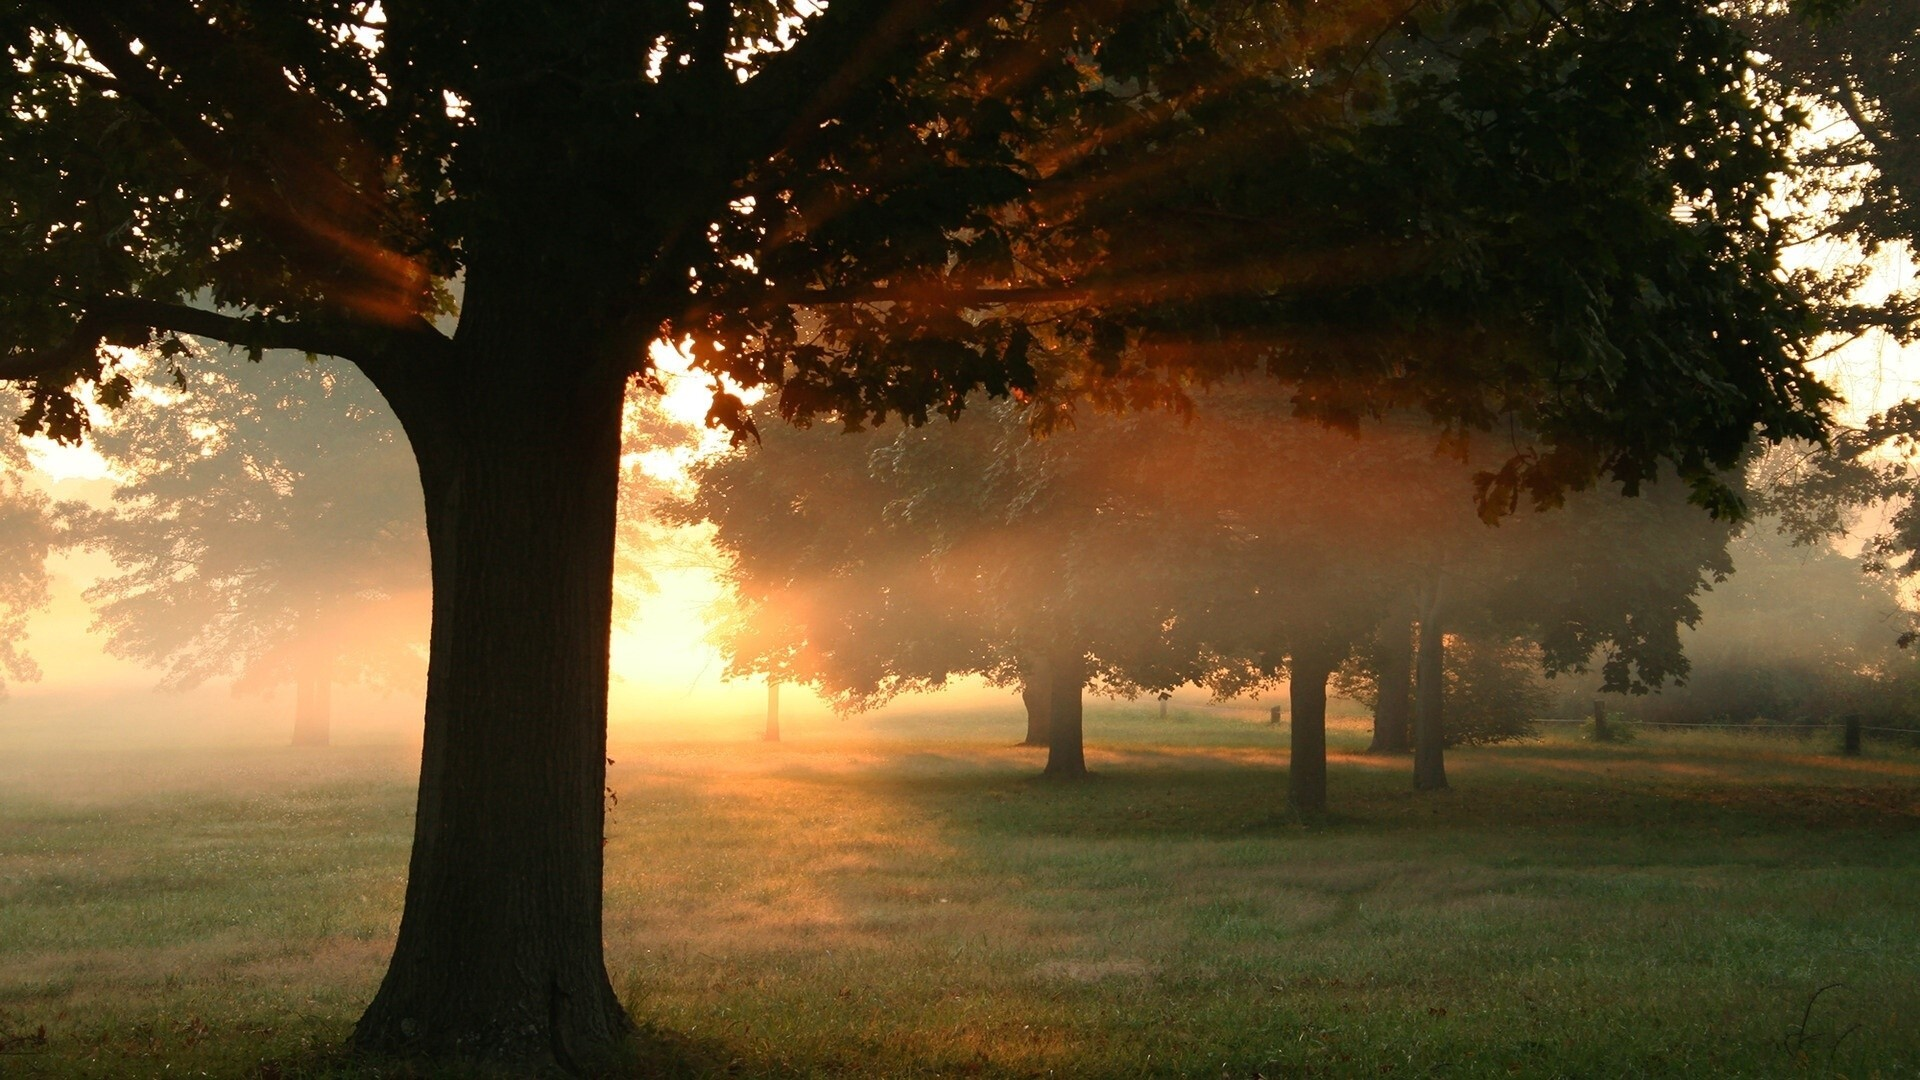 Trees View In Sunrise Wallpaper